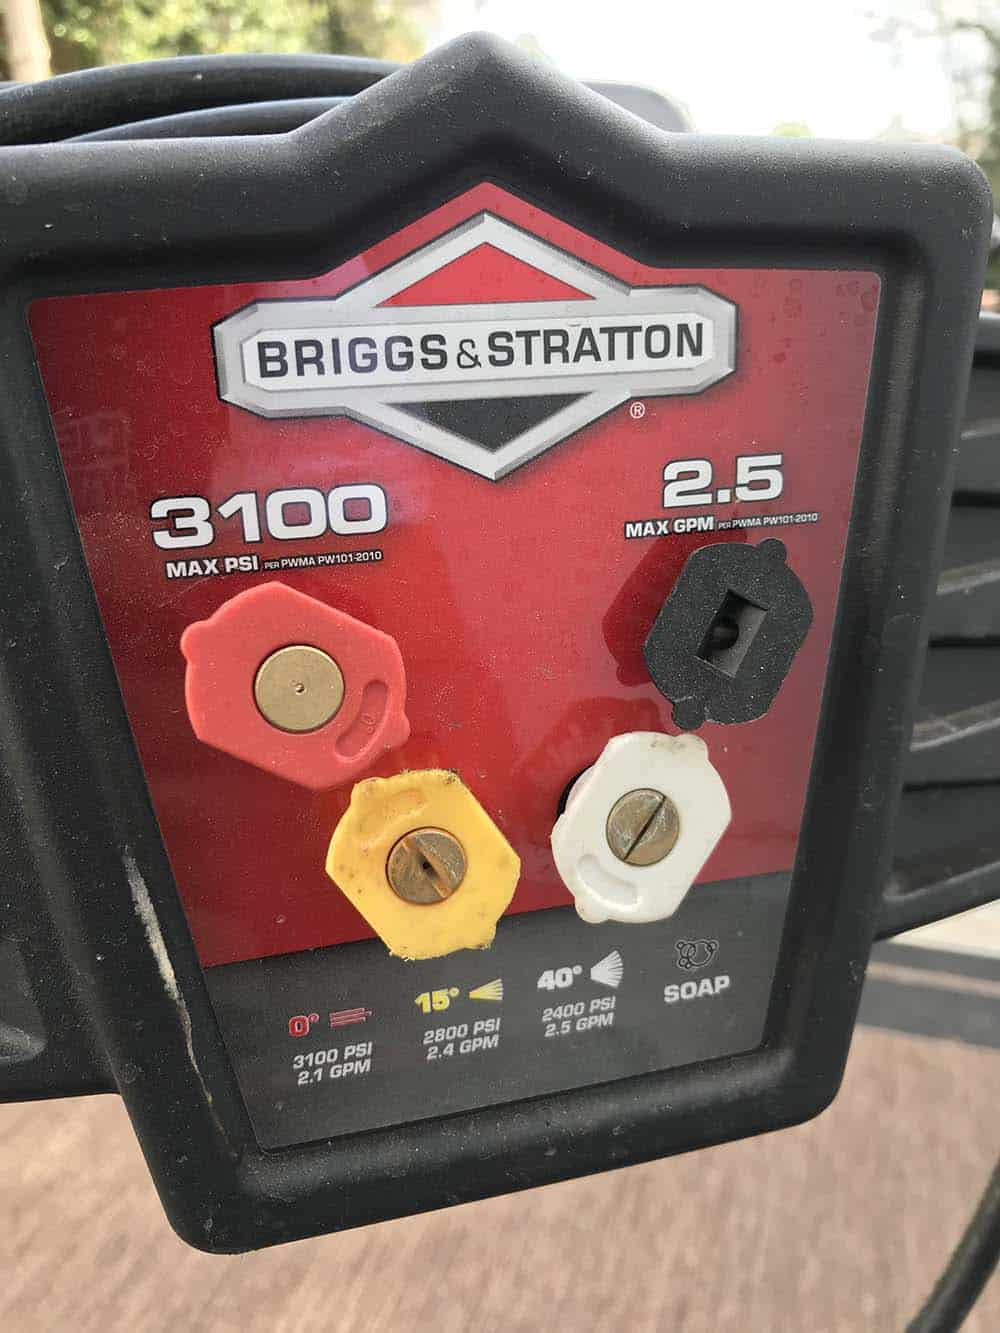 Why A Pressure Washer Is Must Have Cleaning Tool Just Bought Power With Briggs And Stratton Engine One Concern Gas Powered Was The Sound Of But Addressed This By Introducing Quiet Sense Technology That